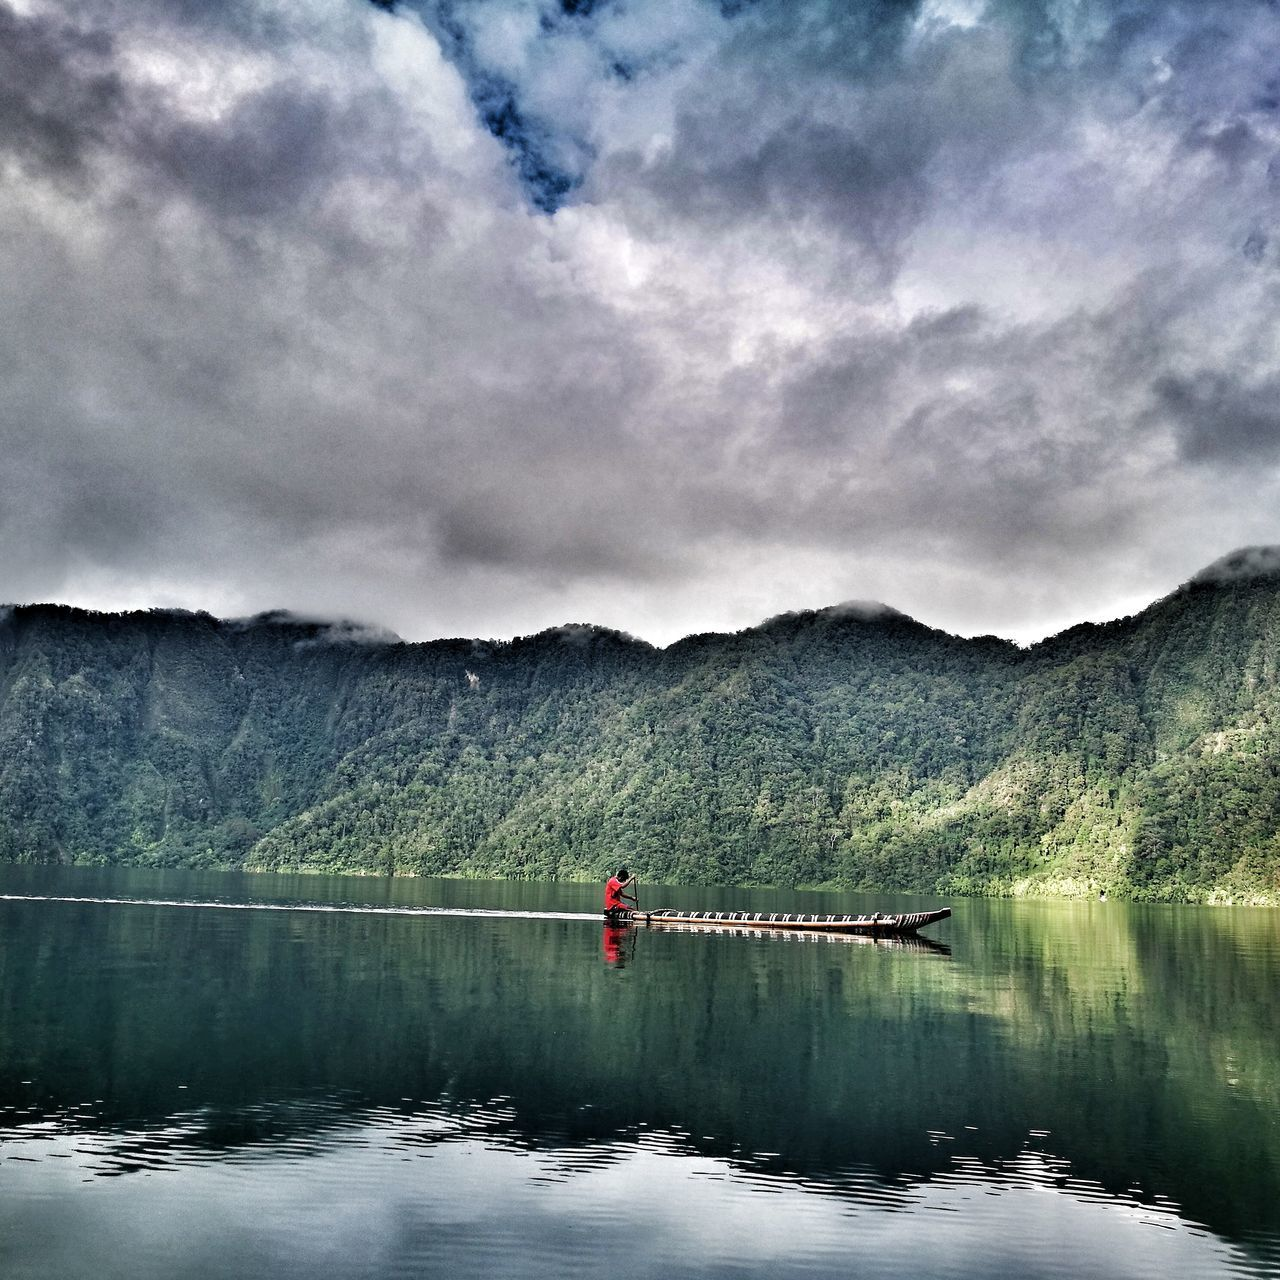 Lakeholon Lakeholonphilippines LakeHolonMtParker Lake Holon Travelph Outdoors Amateurphotography Nature Water Lake Nature Trekking Philippines Canoe The Great Outdoors - 2017 EyeEm Awards